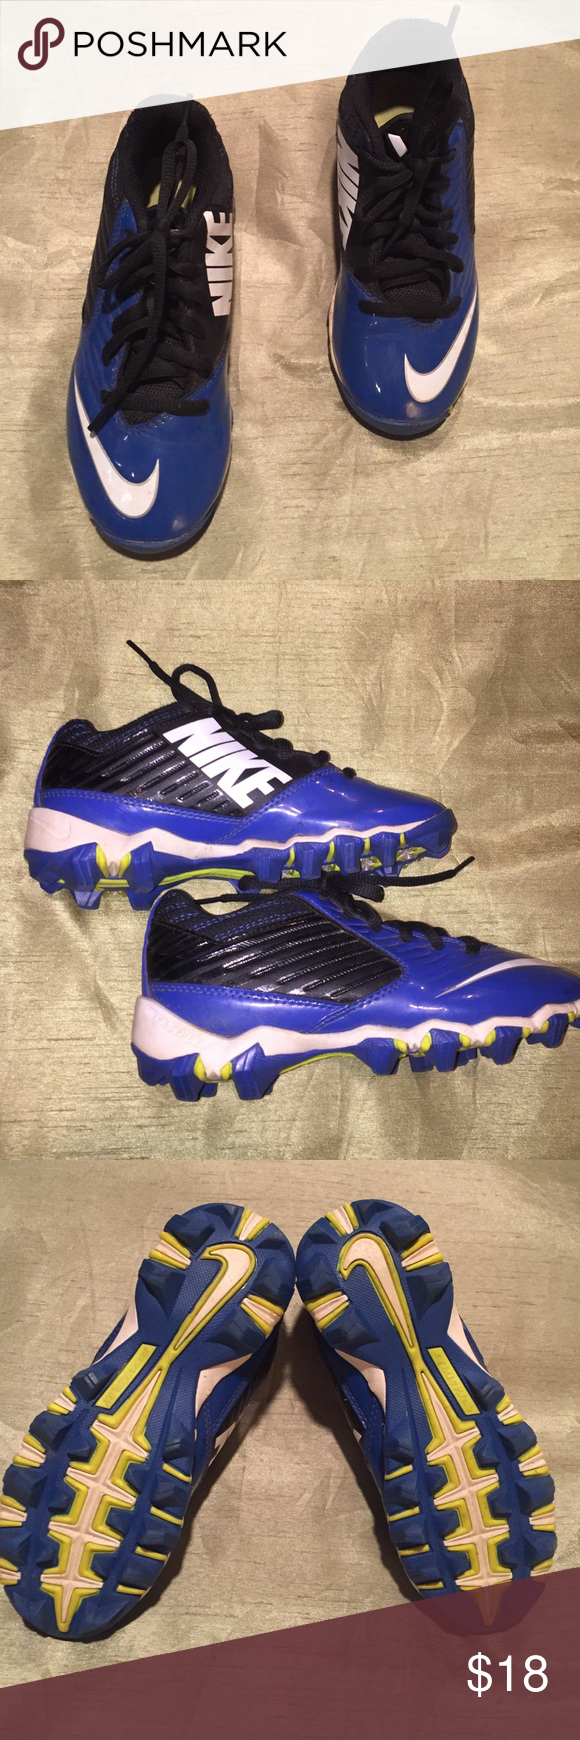 ‼️ FINAL PRICE ‼️ Nike kids football cleats NIKE kids cleats - great condition. Royal blue and white. Size 13 boys Nike Shoes Athletic Shoes